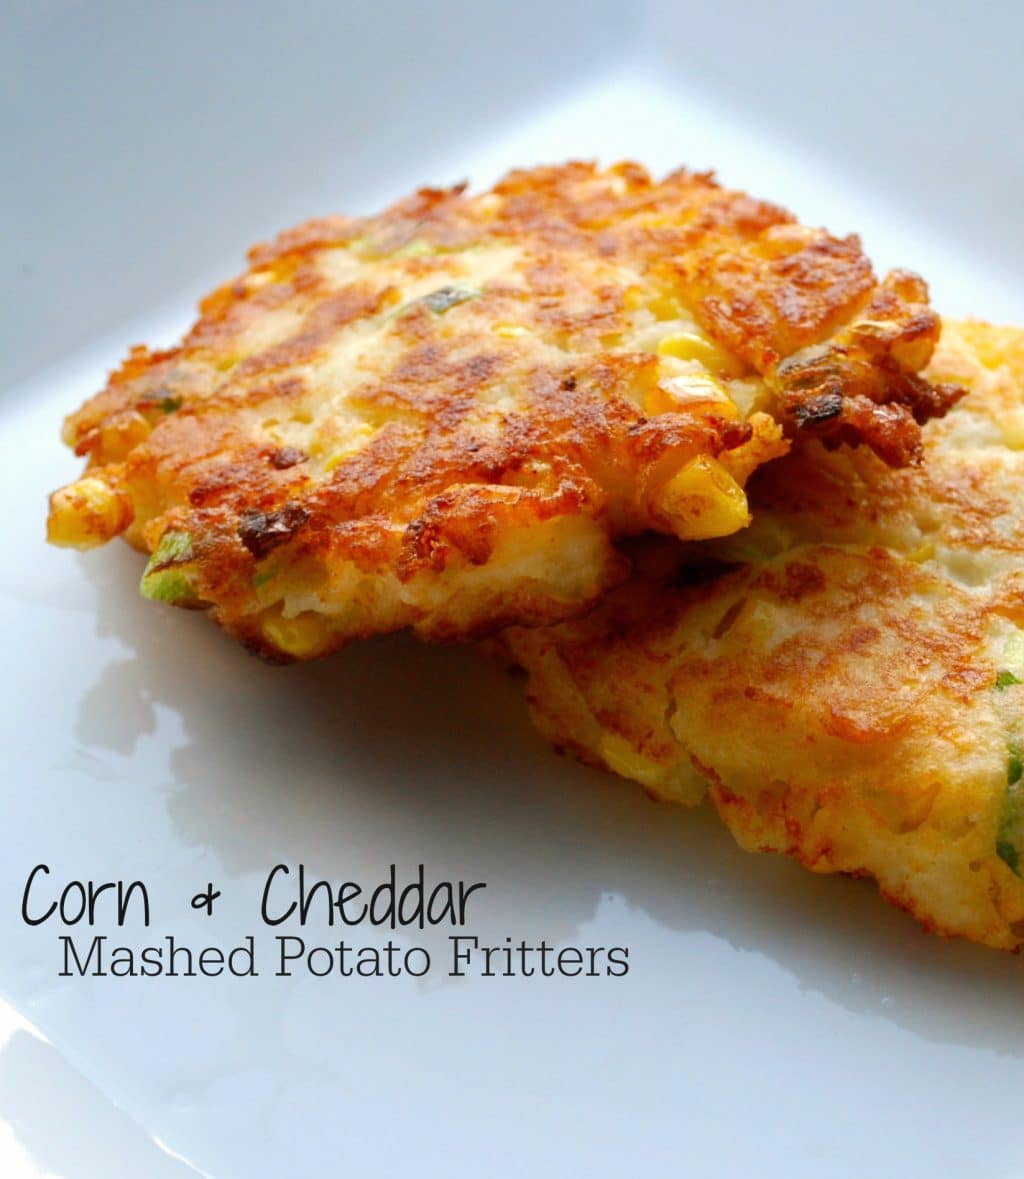 Corn & Cheddar Mashed Potato Fritters | Carrie's Experimental Kitchen...